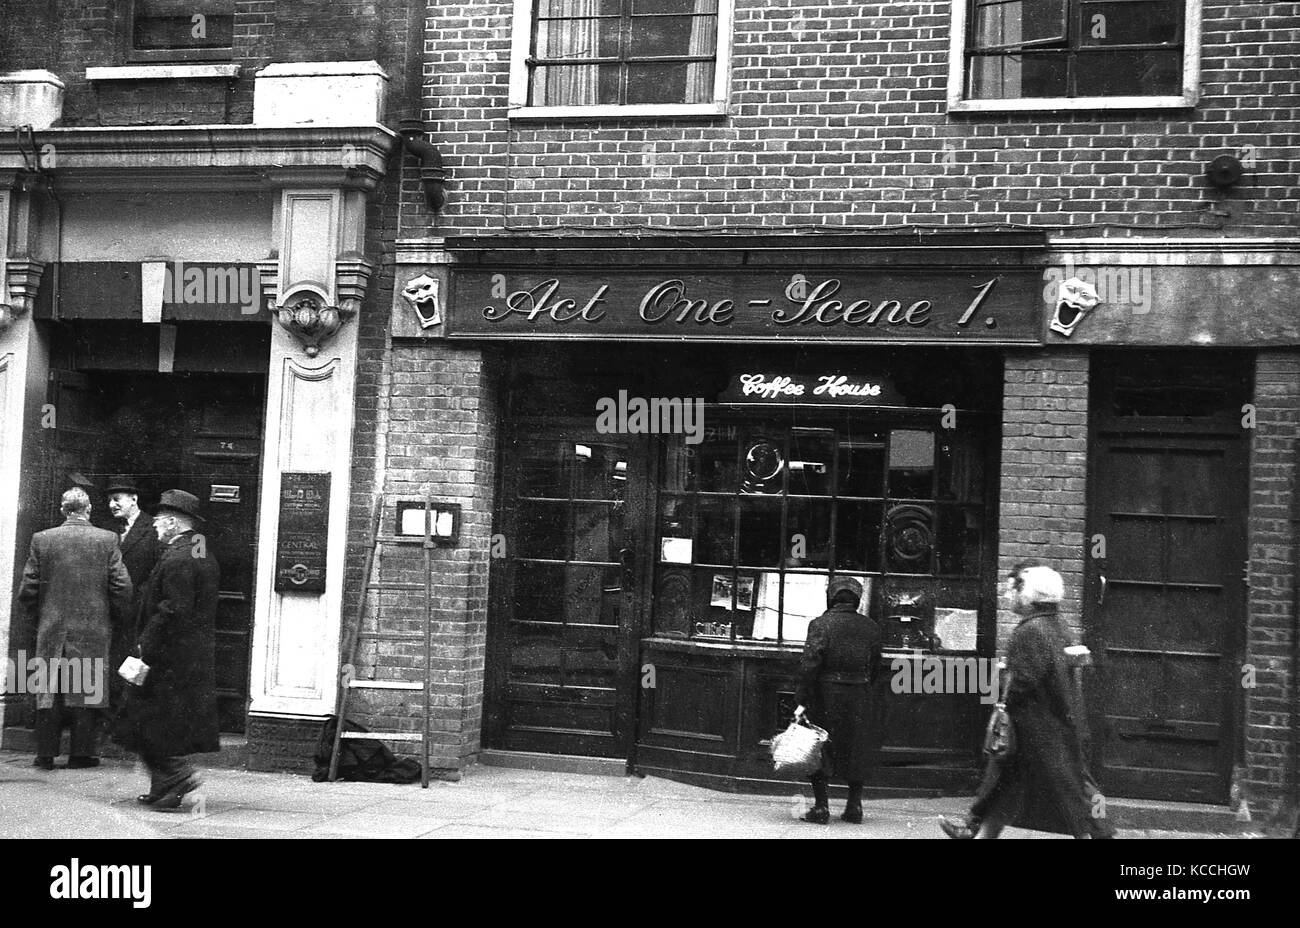 Late 1950s, historical picture showing the exterior of the Soho coffee house, Act one -Scene 1, a venue thaw would - Stock Image